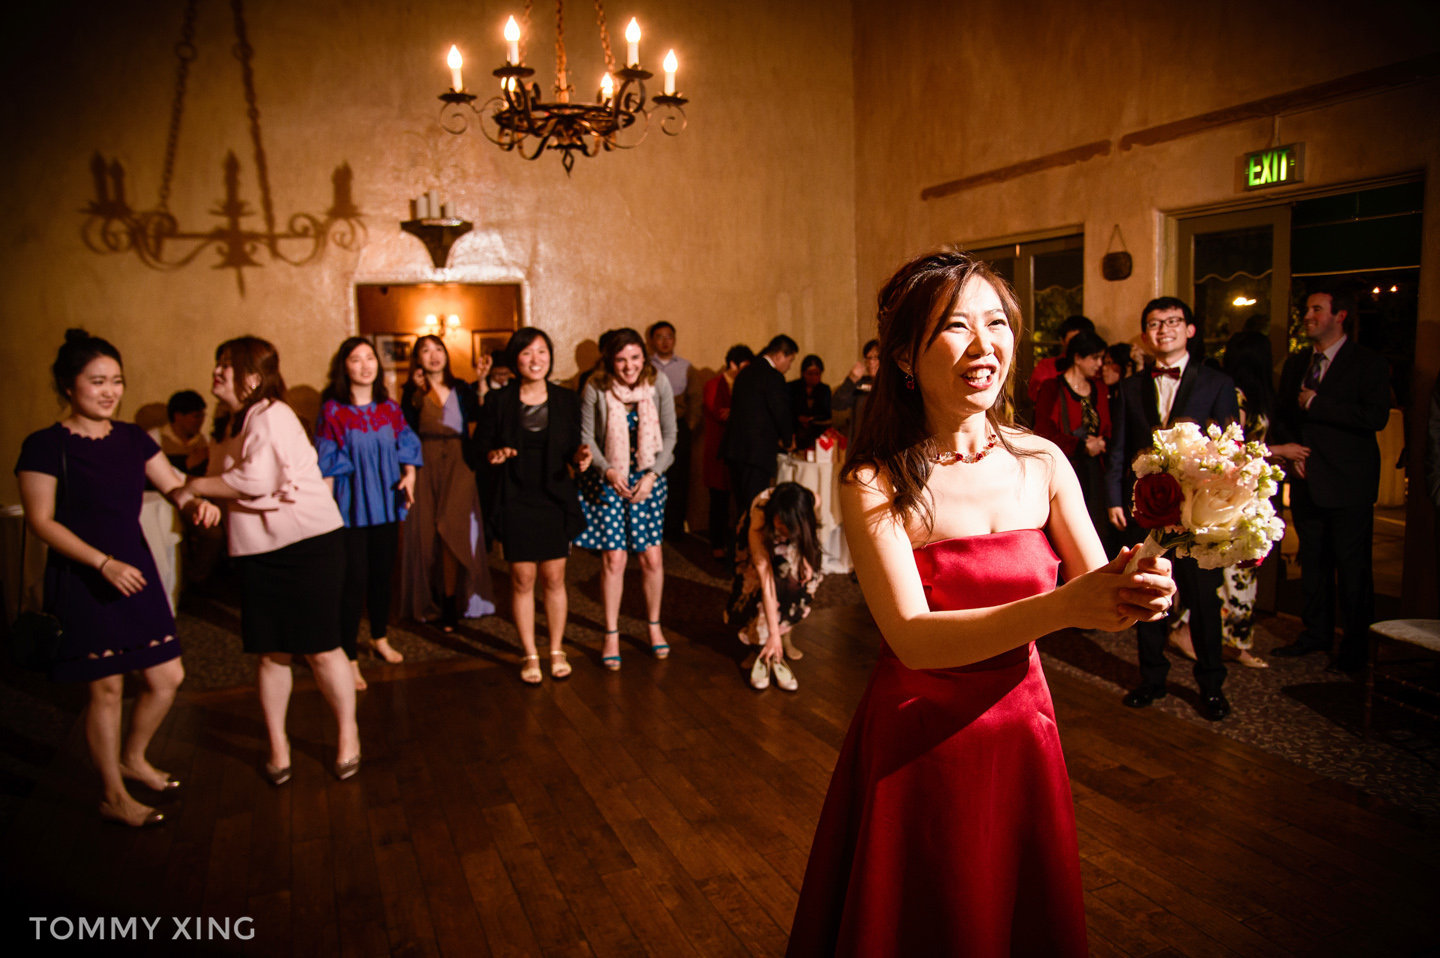 Los Angeles Wedding Photographer 洛杉矶婚礼婚纱摄影师 Tommy Xing-315.JPG